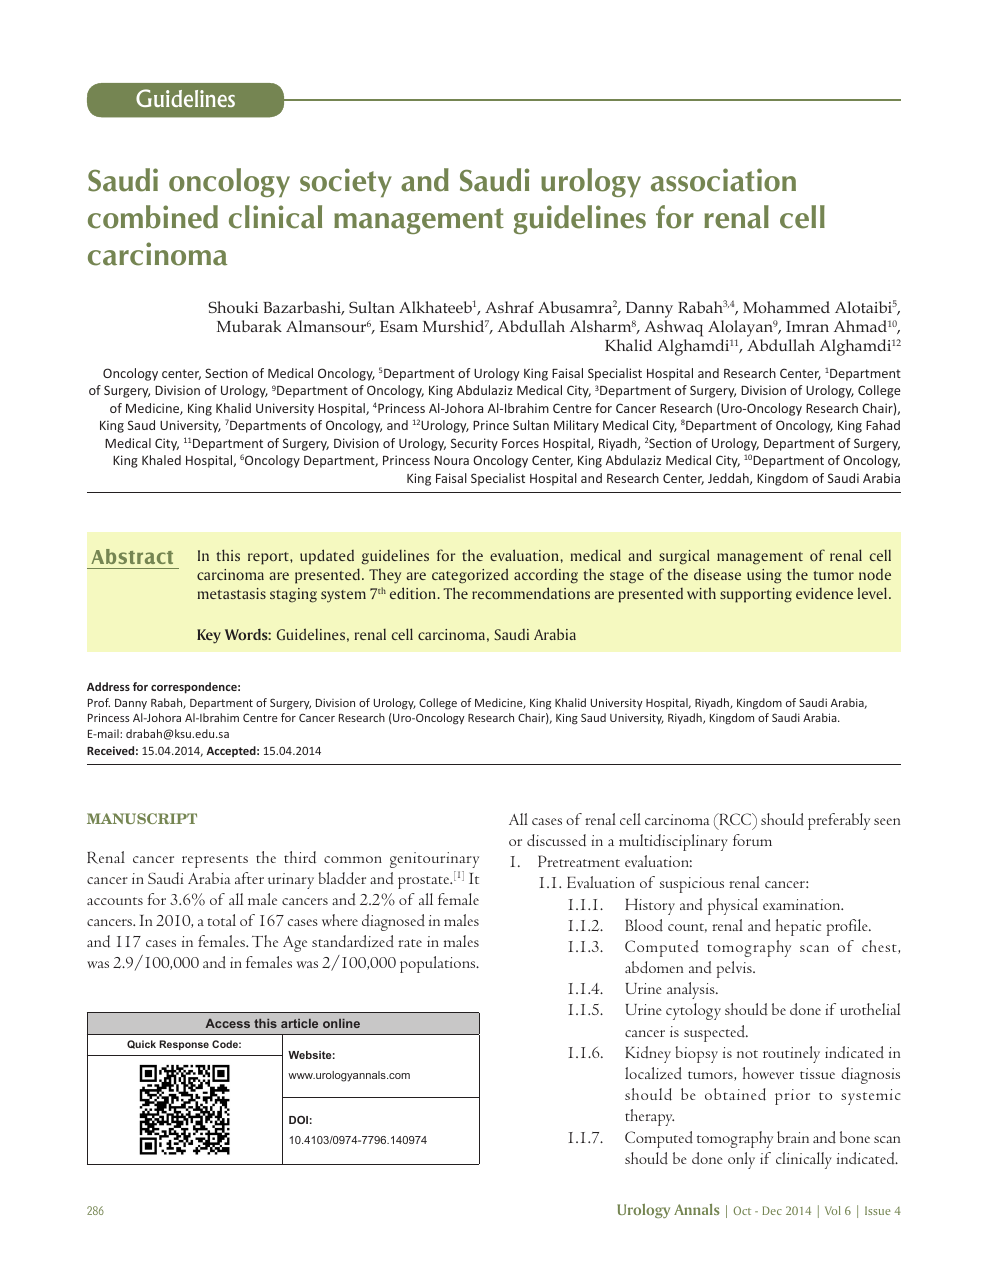 Saudi Oncology Society And Saudi Urology Association Combined Clinical Management Guidelines For Renal Cell Carcinoma Topic Of Research Paper In Clinical Medicine Download Scholarly Article Pdf And Read For Free On